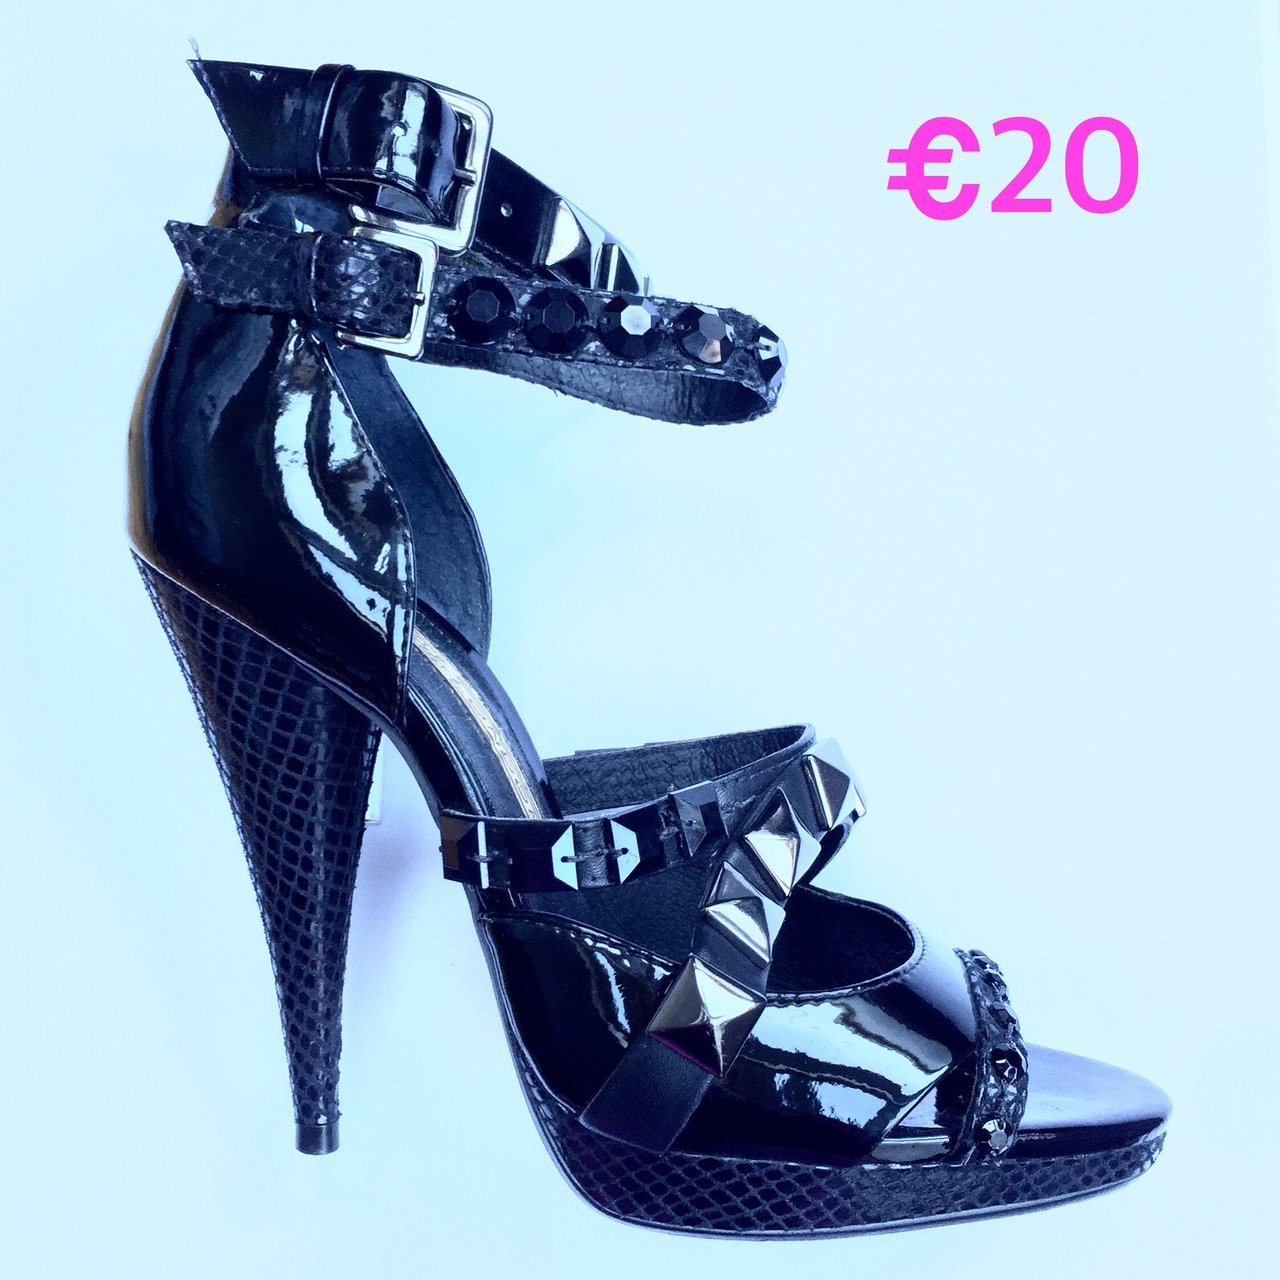 c7f150c1ee3 BUFFALO LONDON Shoes Rock Stud Ankle Strap Sandal in Patent - Depop